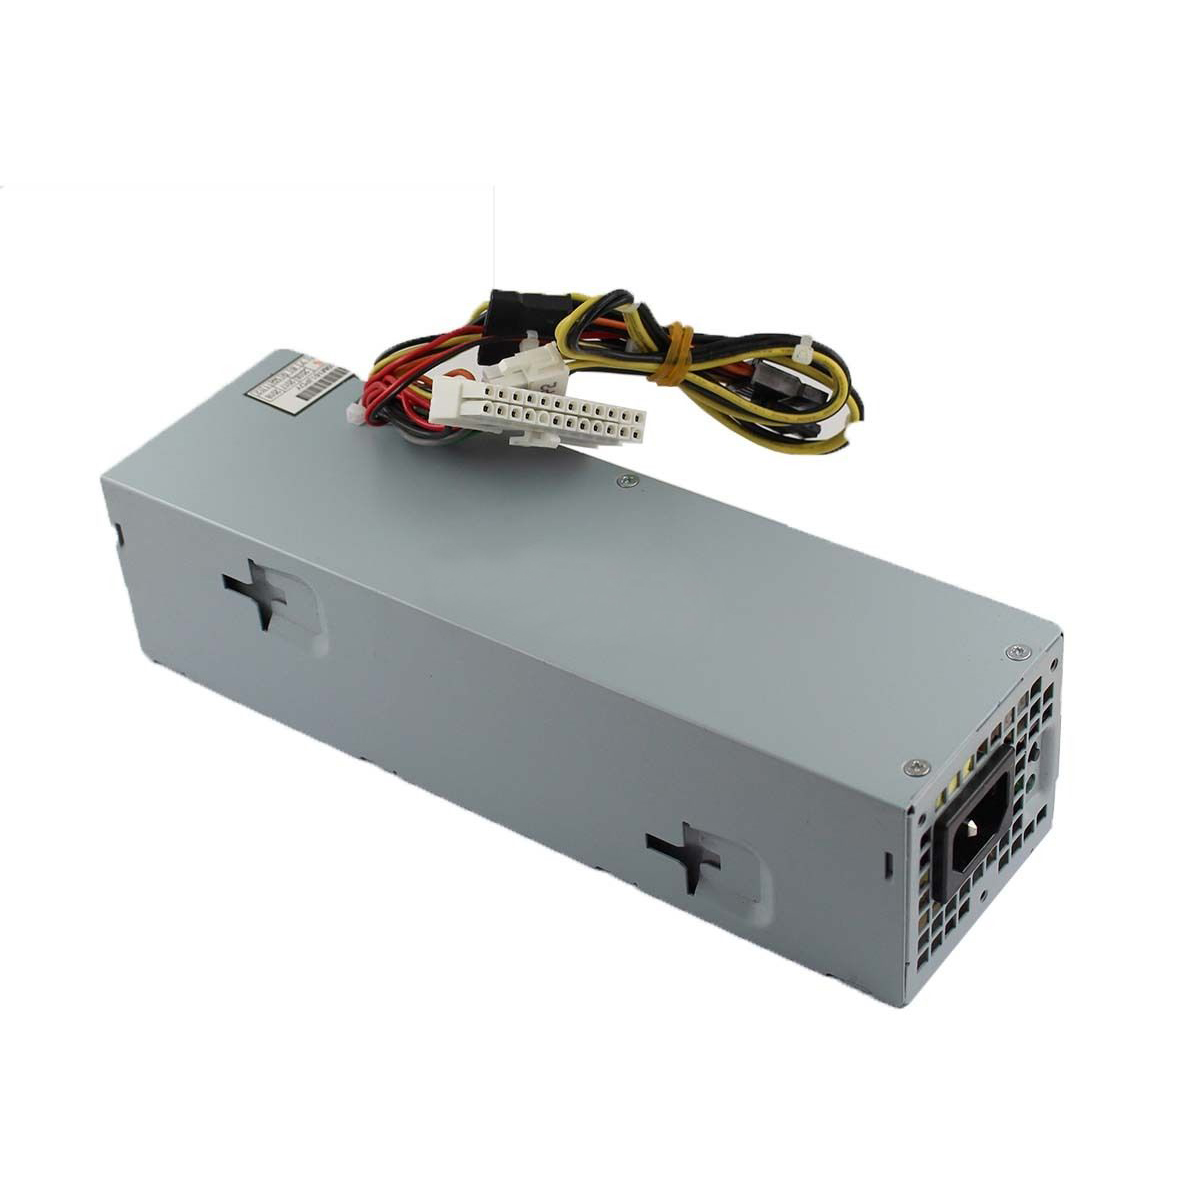 For DELL OPTIPLEX 390 790 990 240W POWER SUPPLY 709MT 3